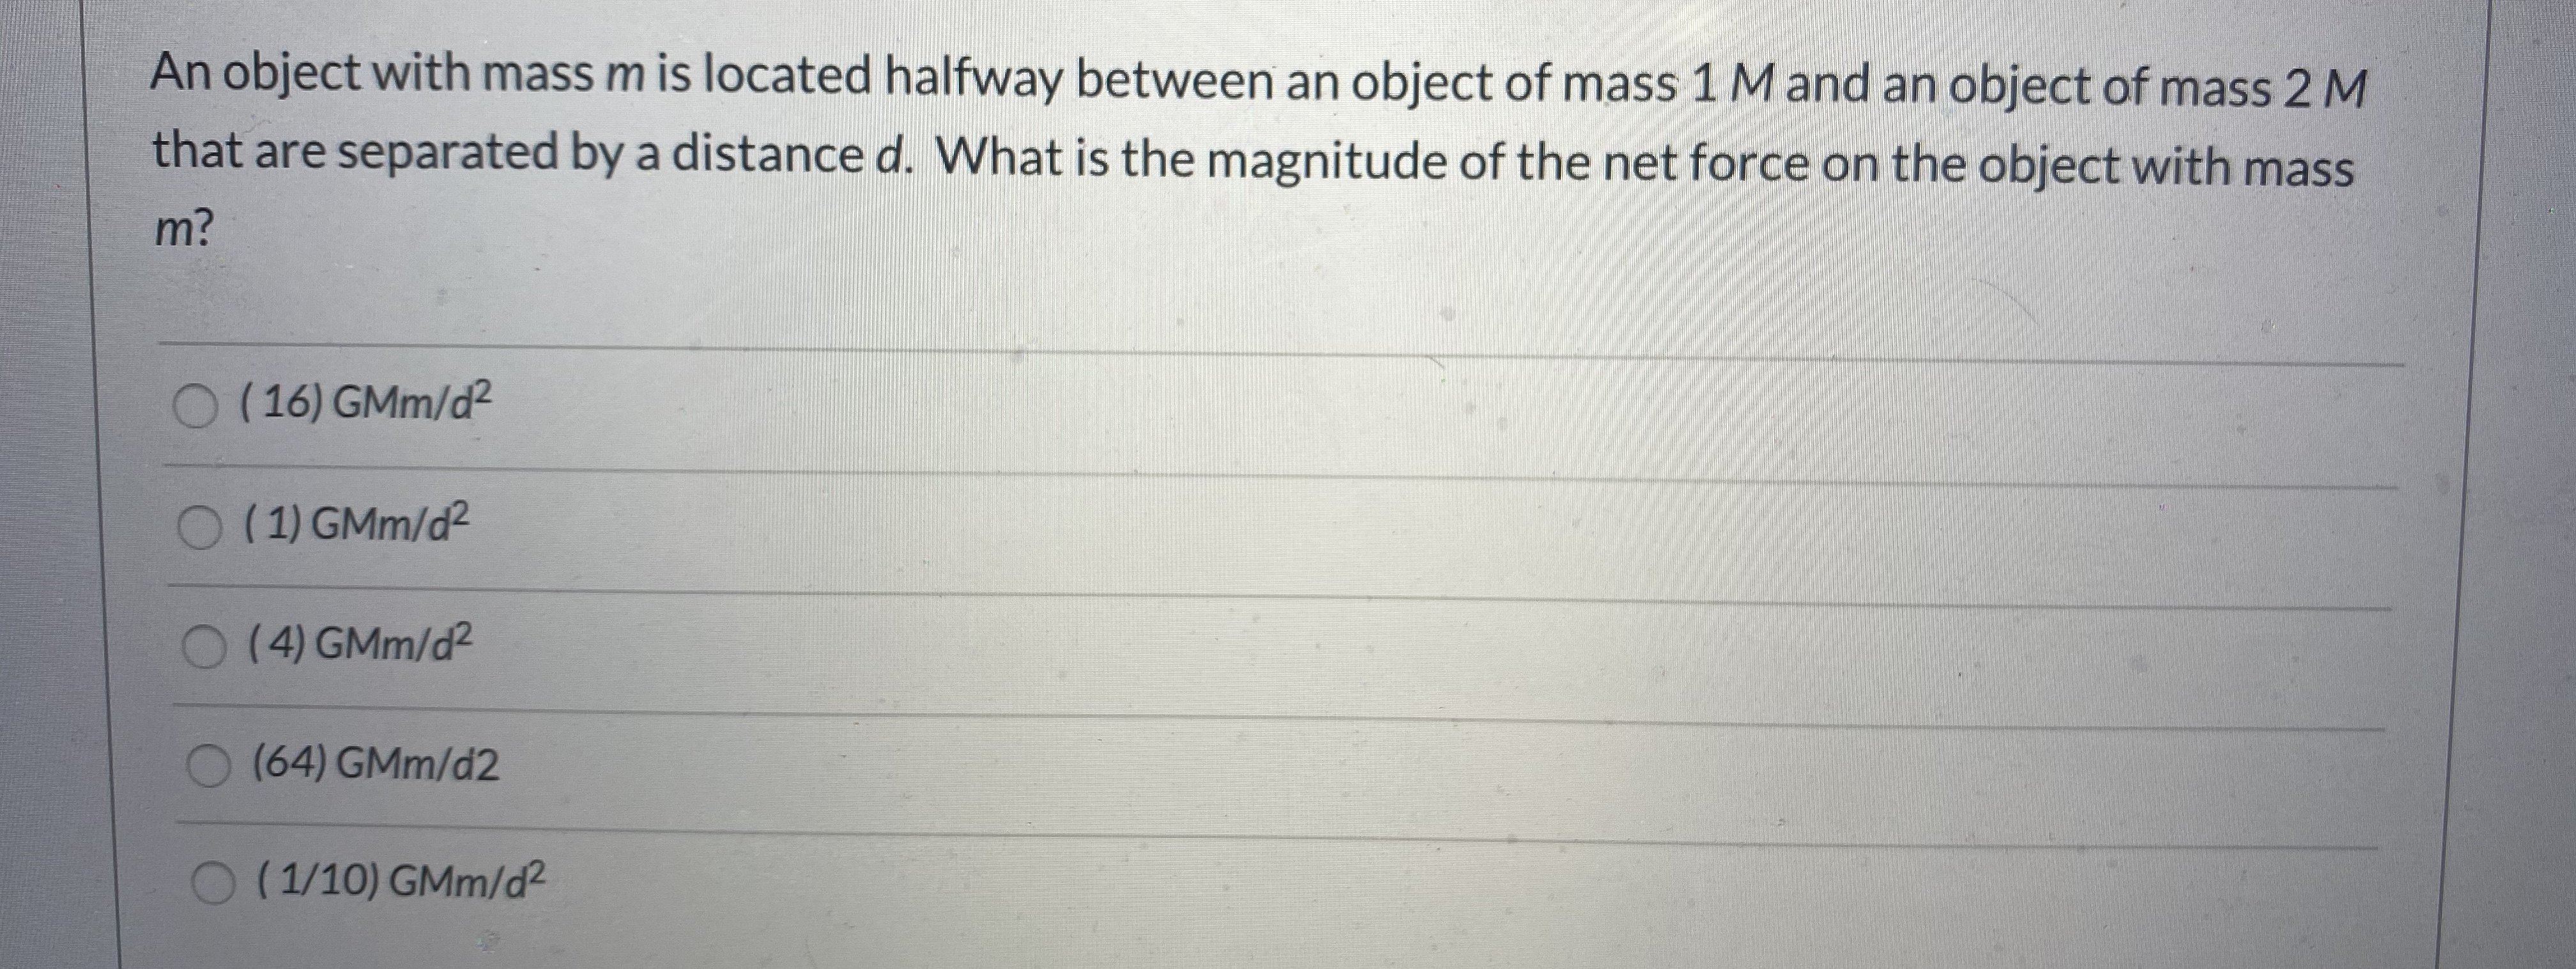 An object with mass m is located halfway between an object of mass 1M and an object of mass 2 M that are separated by a distance d. What is the magnitude of the net force on the object with mass m?